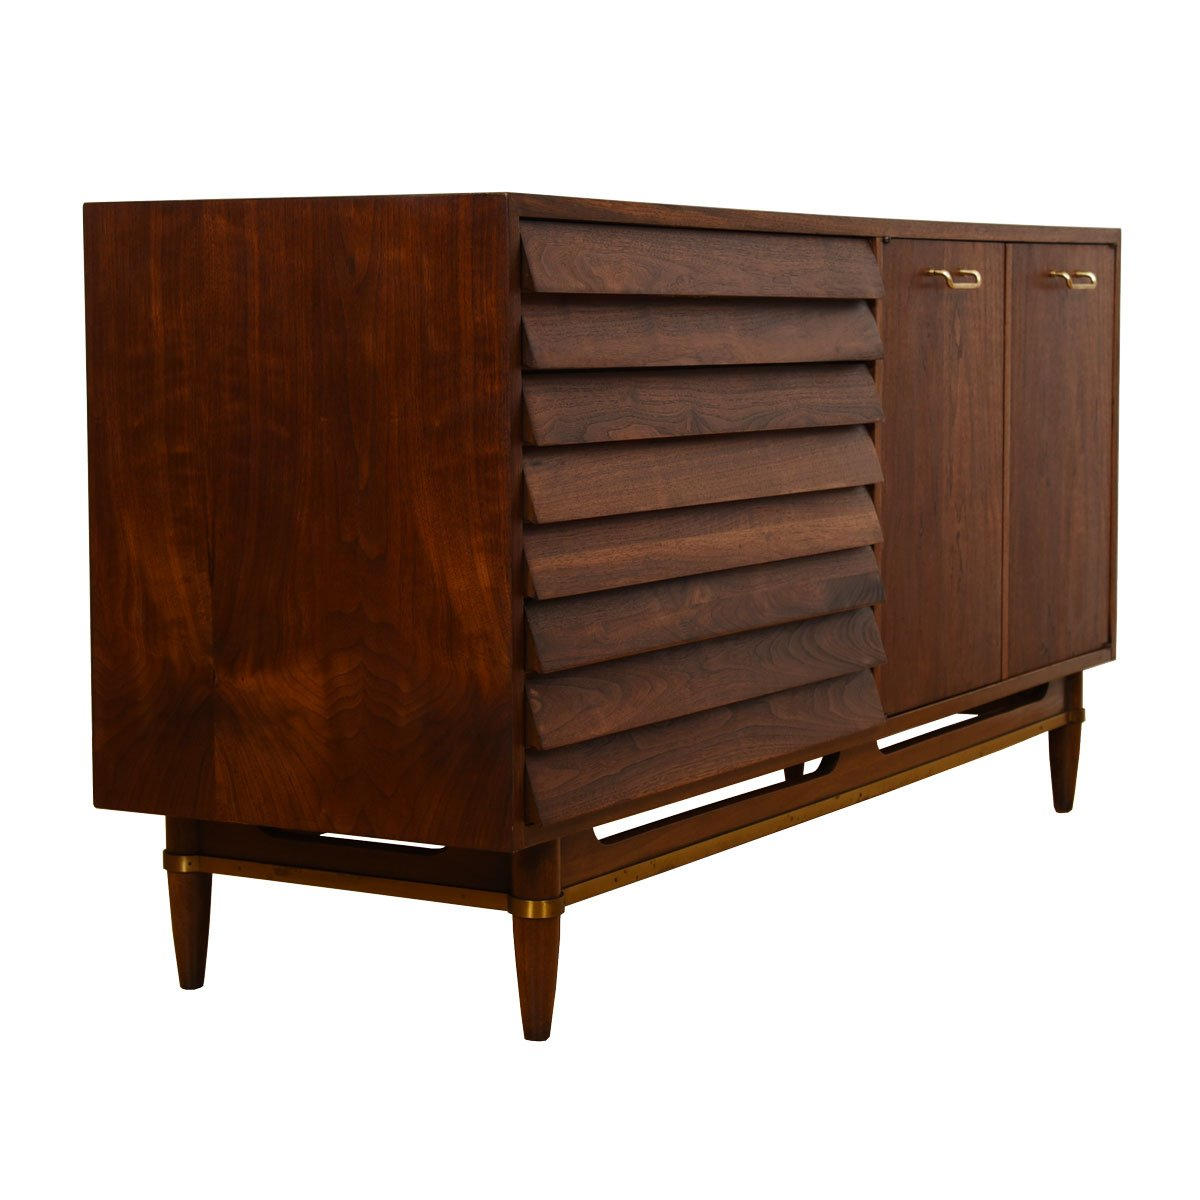 Compact Mid Century Walnut Slatted Front Dresser / Sideboard.